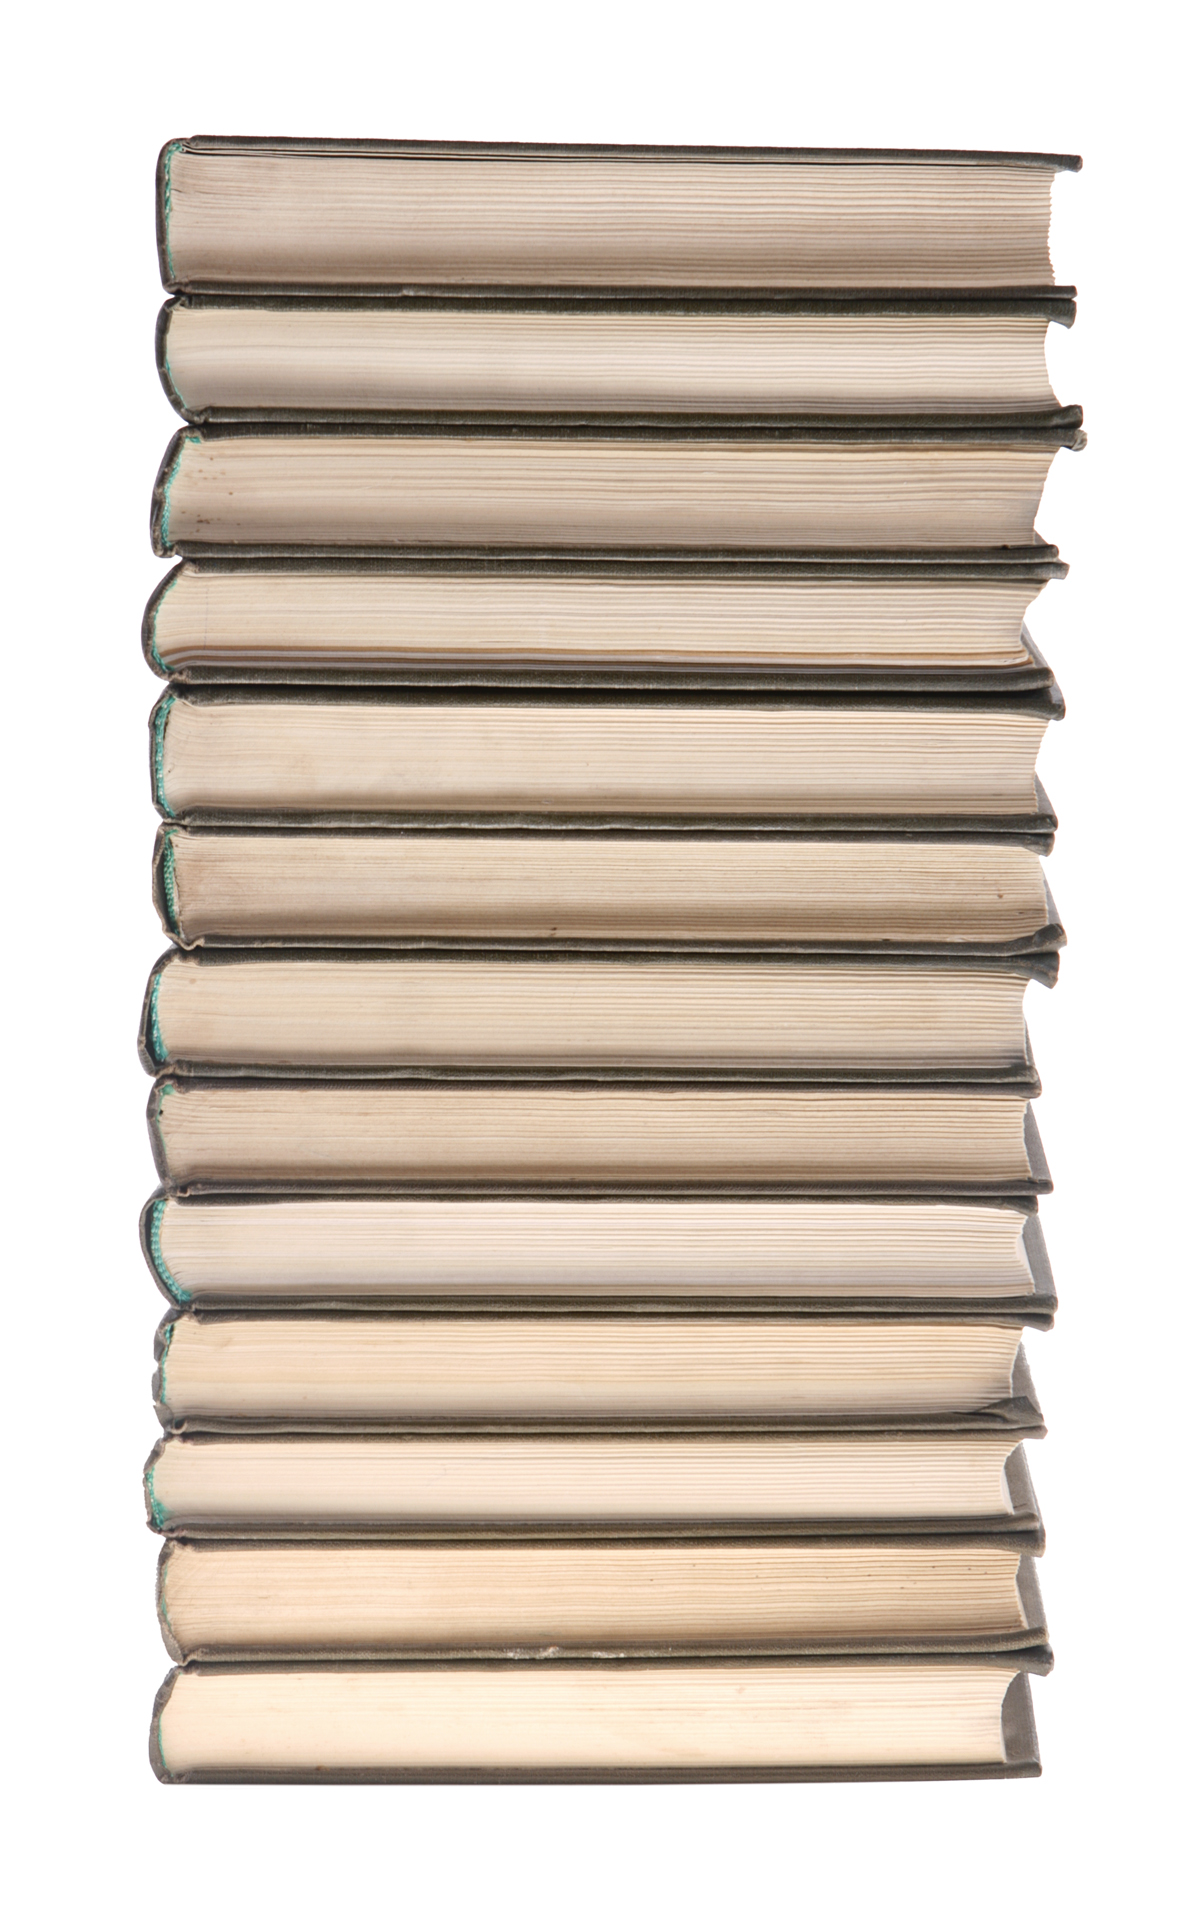 Stack of books, Book, Books, Education, Encyclopedia, HQ Photo